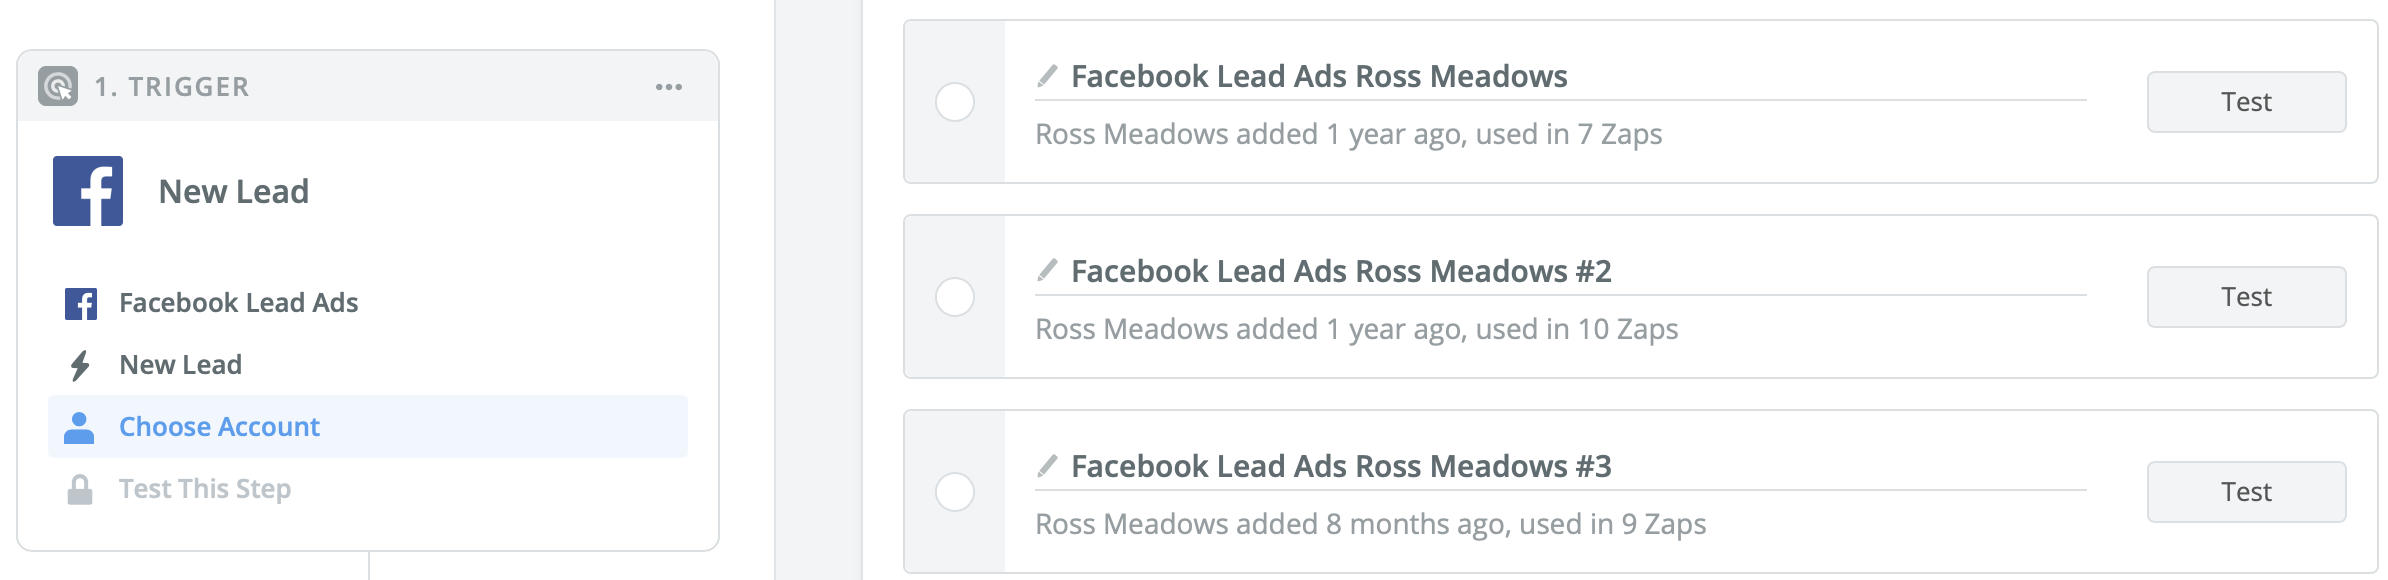 Connect Facebook to Zapier to email lead ads automatically